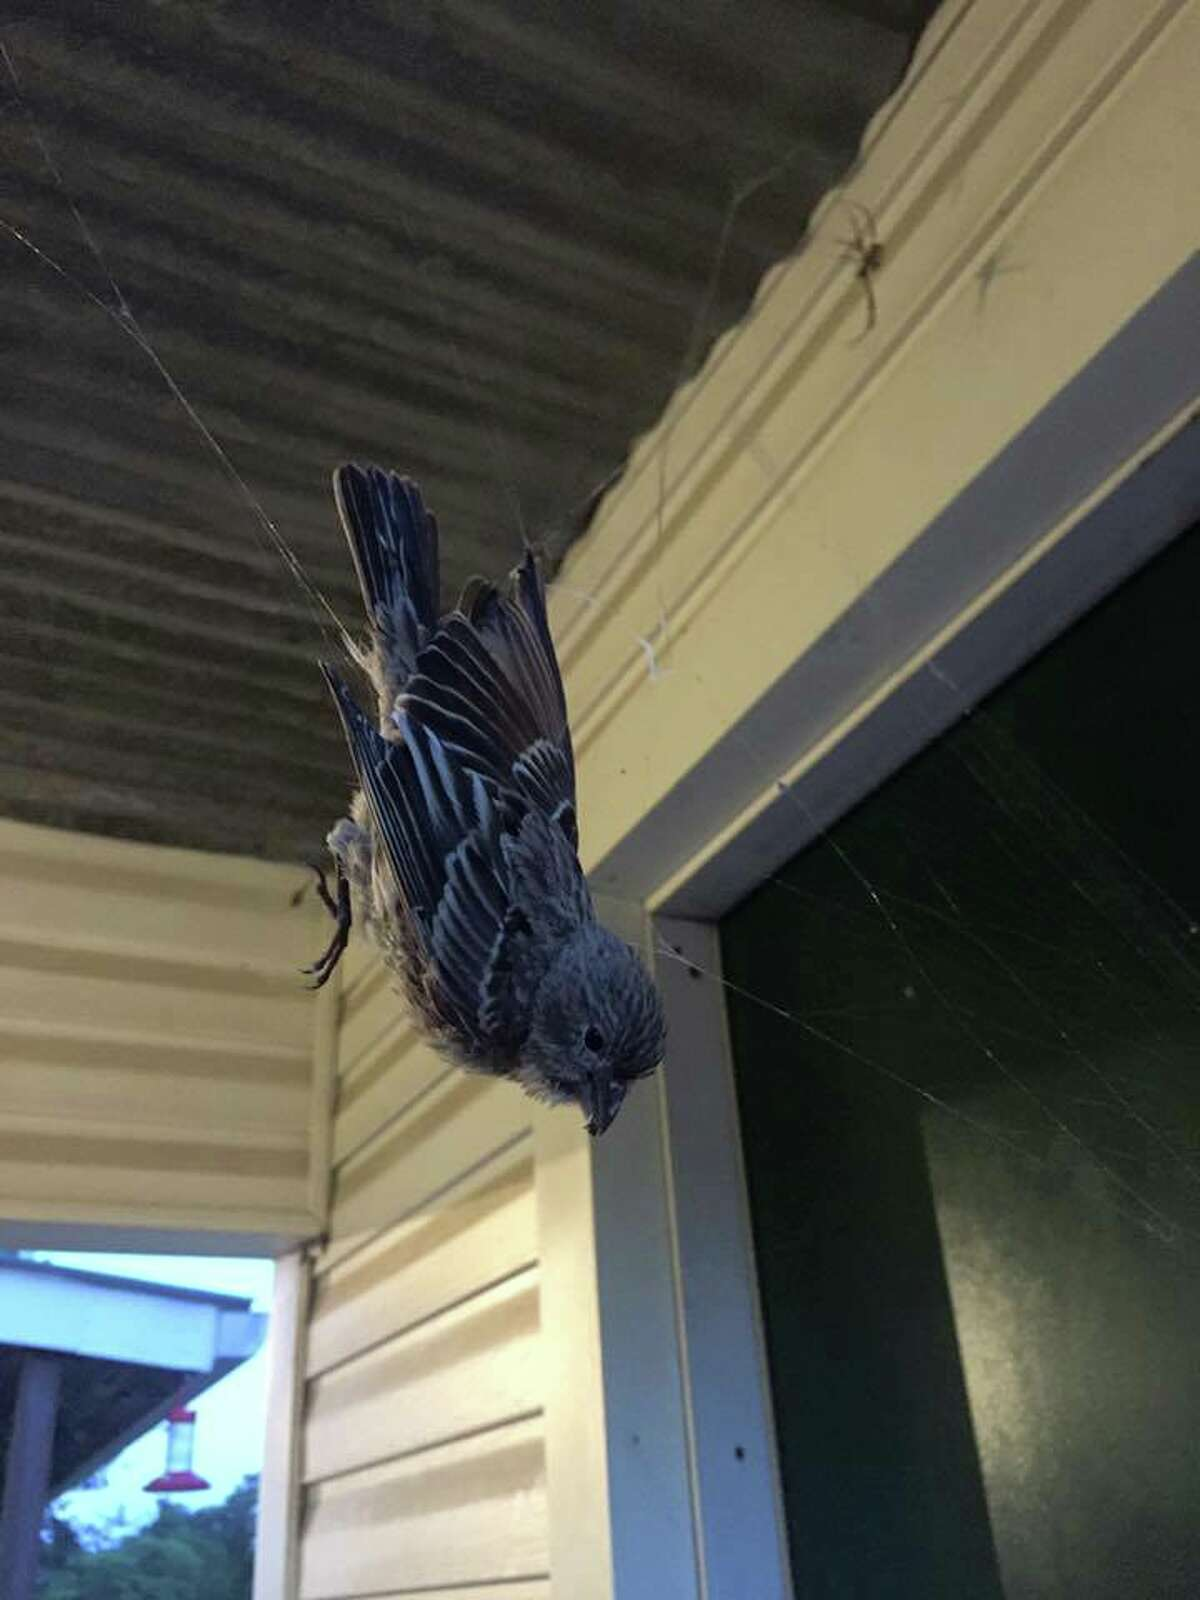 Giant spider's web catches bird at Texas state park A black and yellow spider trapped a house finch in its web, making for an interesting photo Texas Parks and Wildlife shared to their Facebook on Aug. 11, 2016. While birds typically prey on the large spider, the spider seemed to have the upper hand this time around.